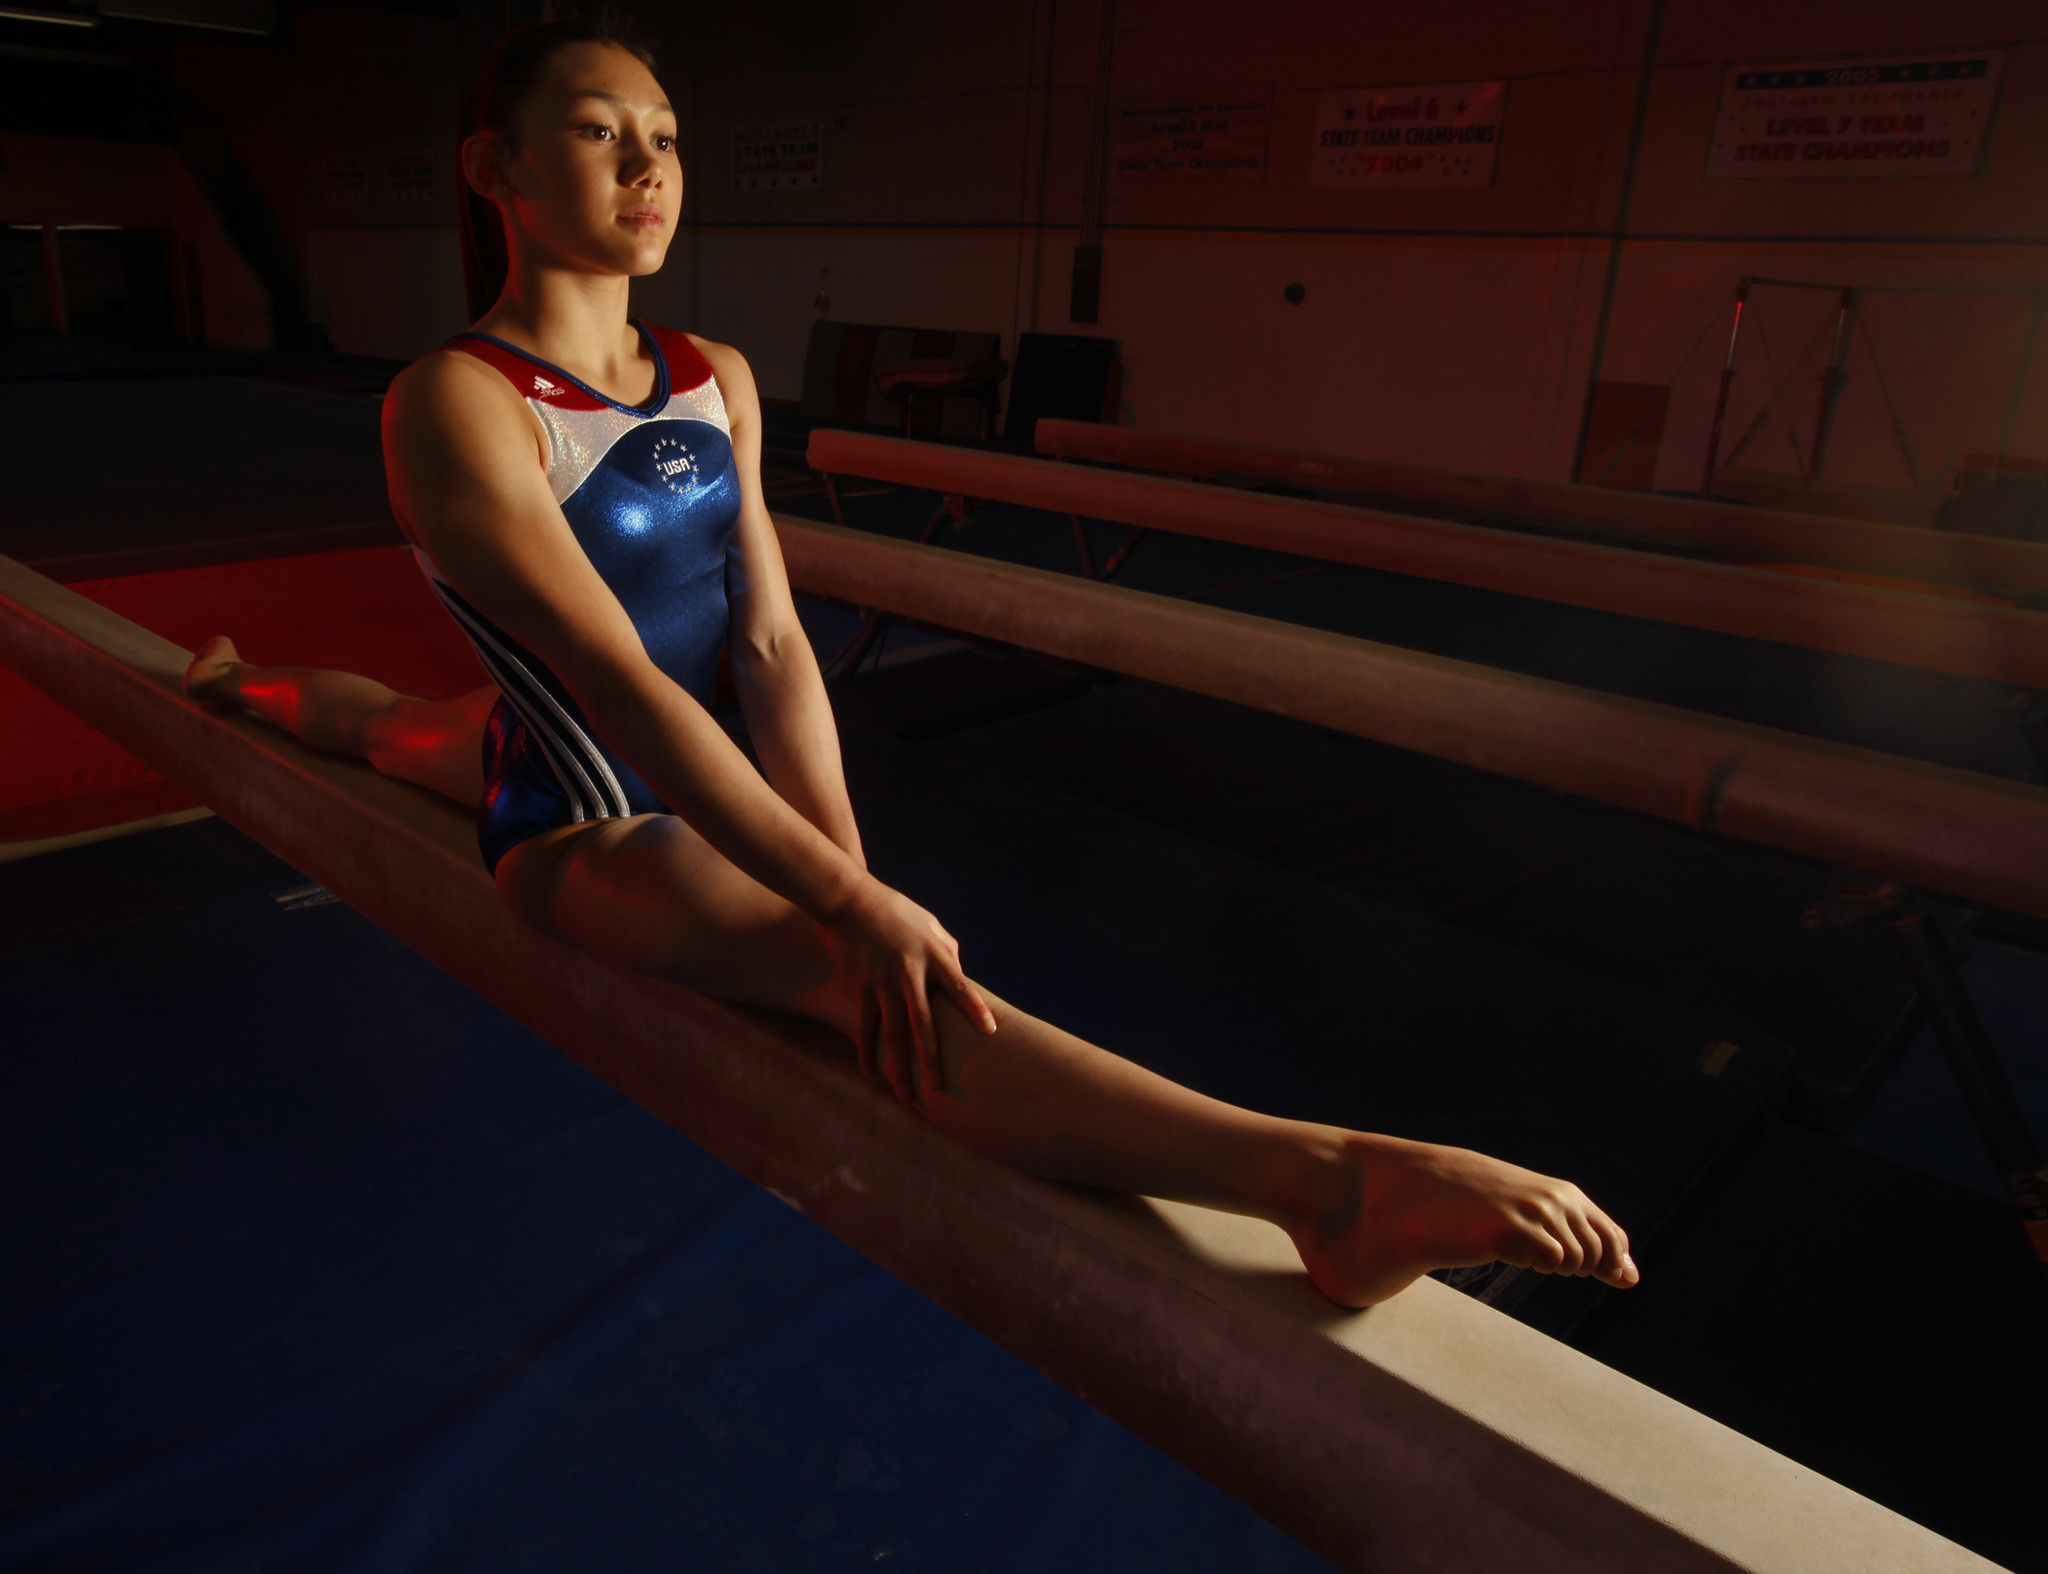 olympic gymnastics champion kyla ross retires before 2016